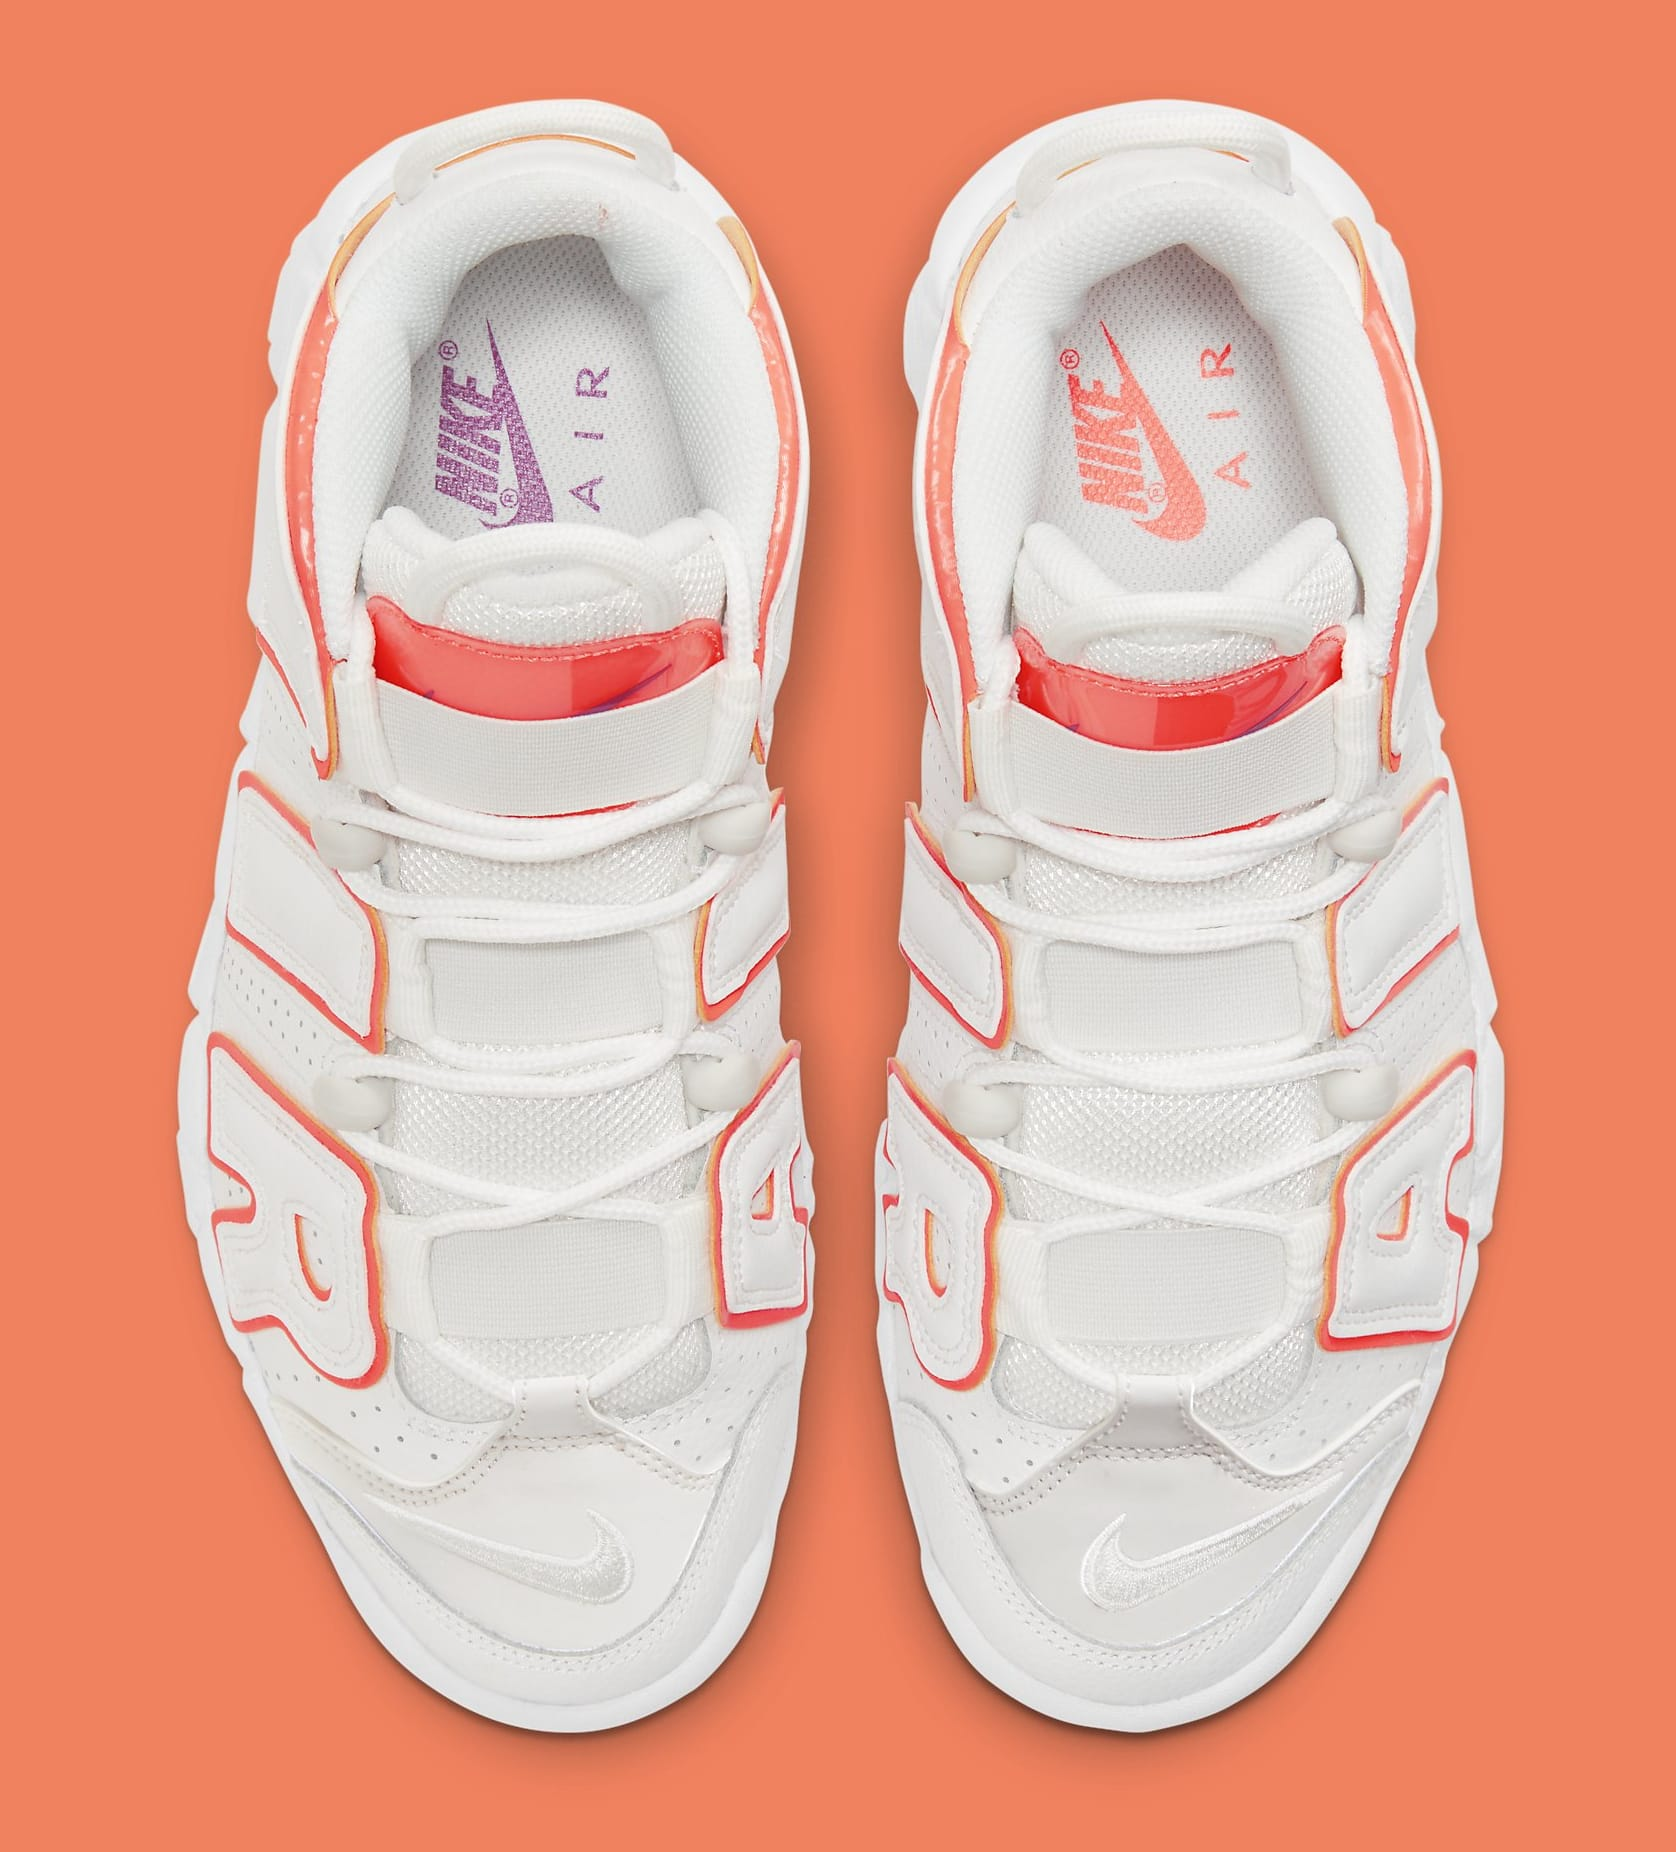 Nike Air More Uptempo 'Sunset' DH4968-100 Top